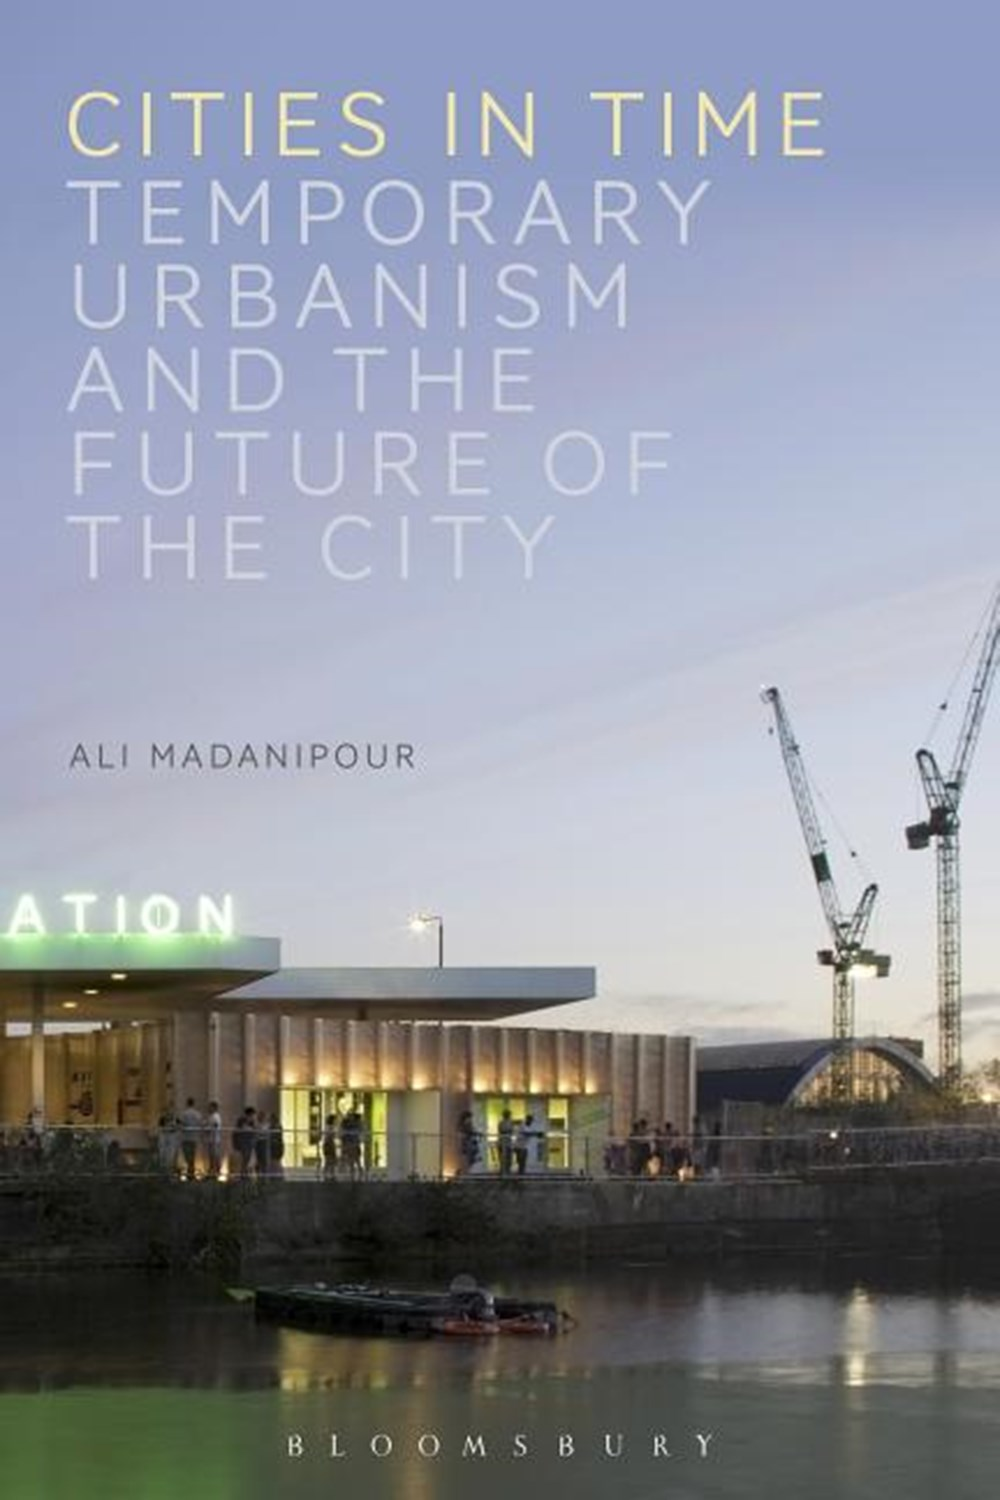 Cities in Time Temporary Urbanism and the Future of the City